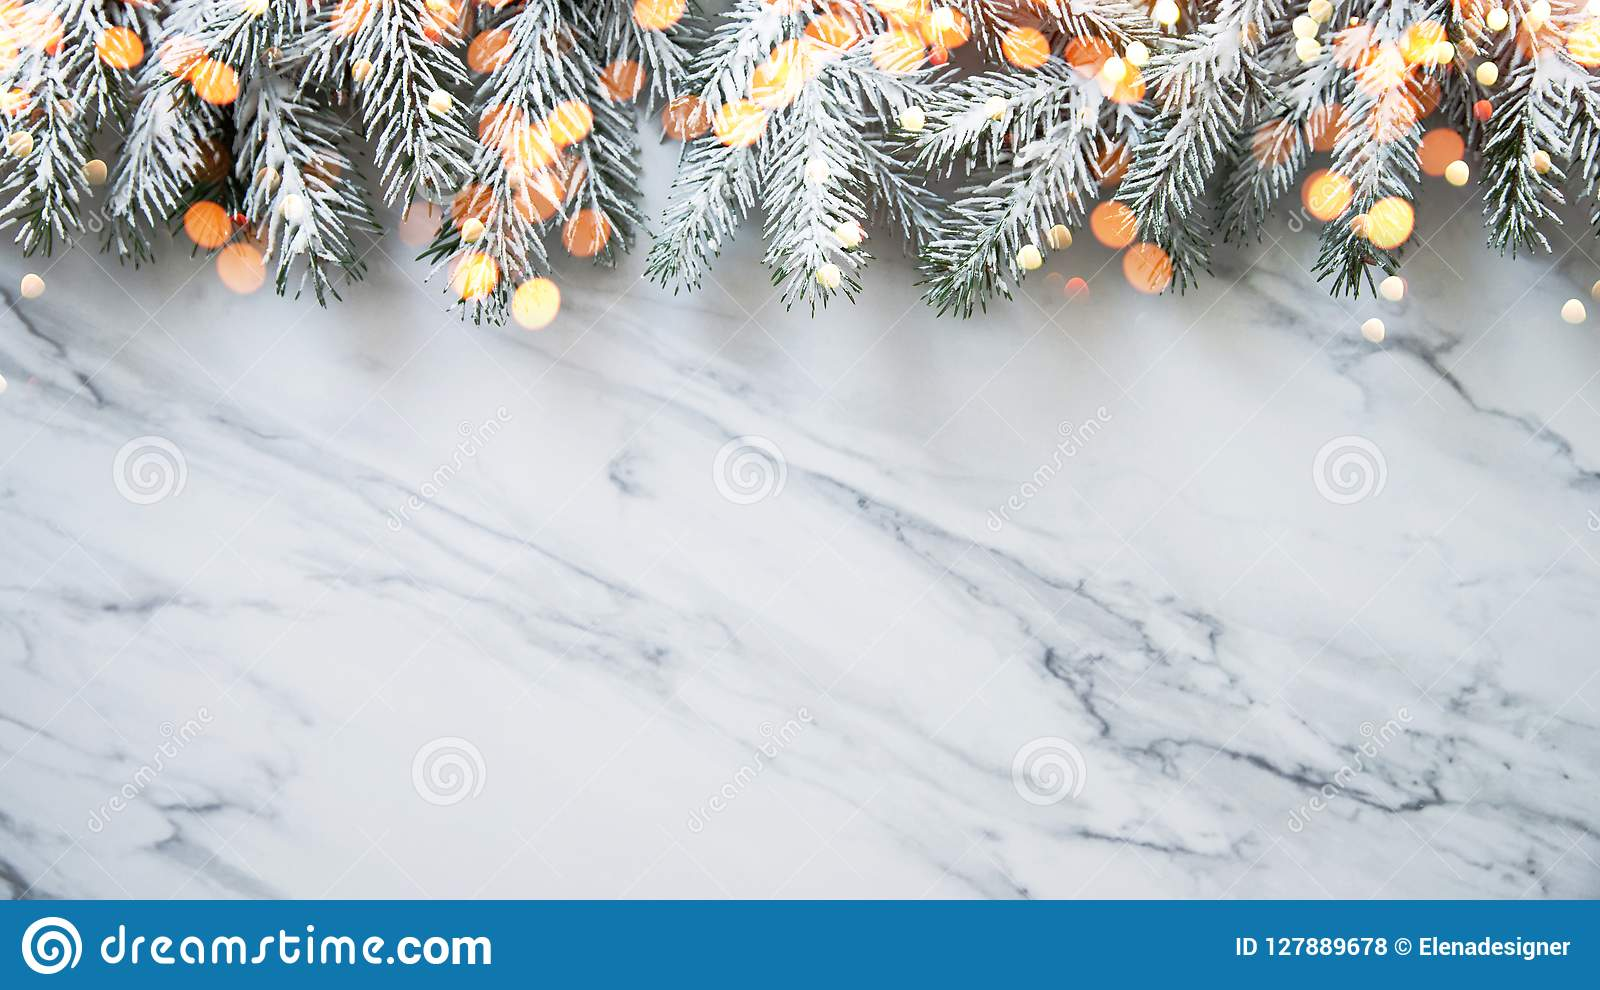 Christmas background with xmas tree on white marble background. Merry christmas greeting card, frame, banner. Winter holiday theme